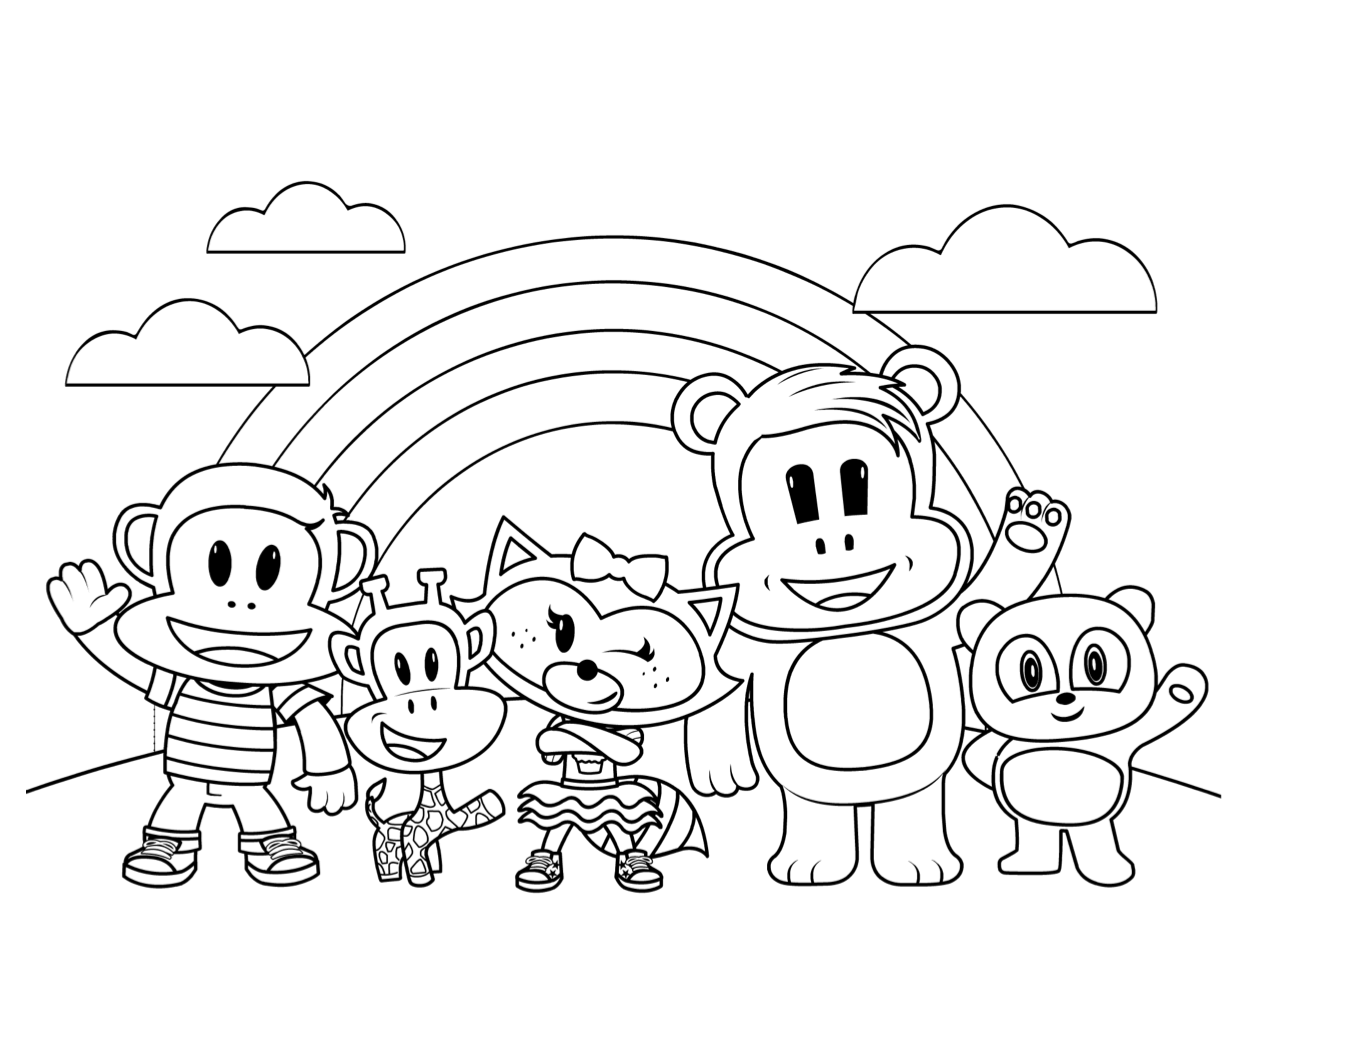 Julius Jr. & Friends #coloring sheet ready for your #artistic touch ...